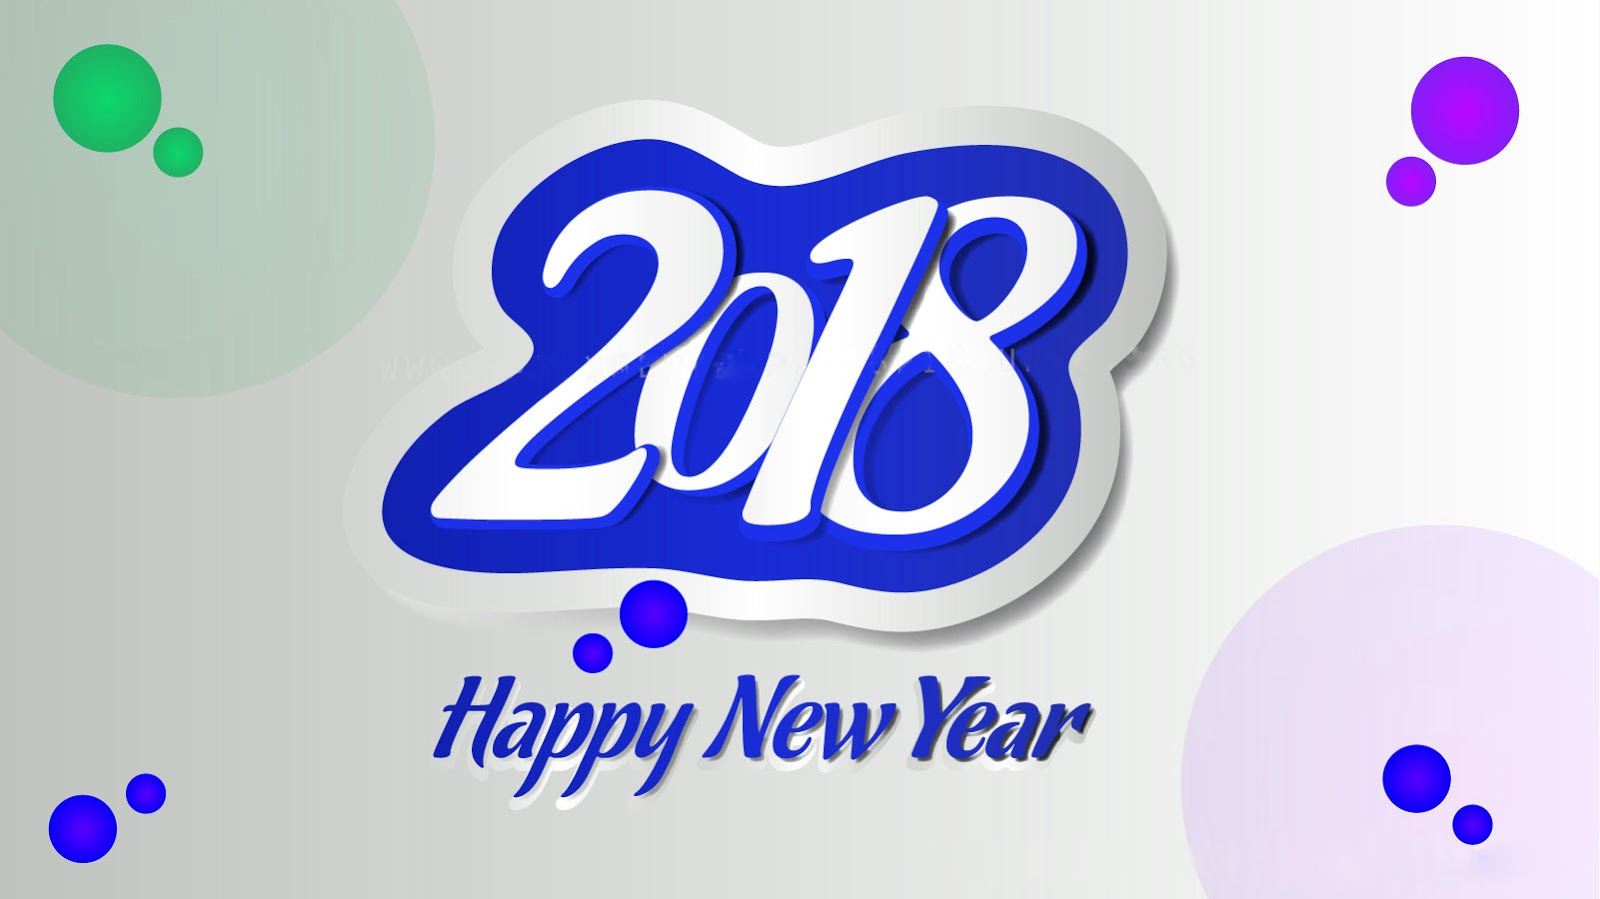 Happy New Year wishes, Images